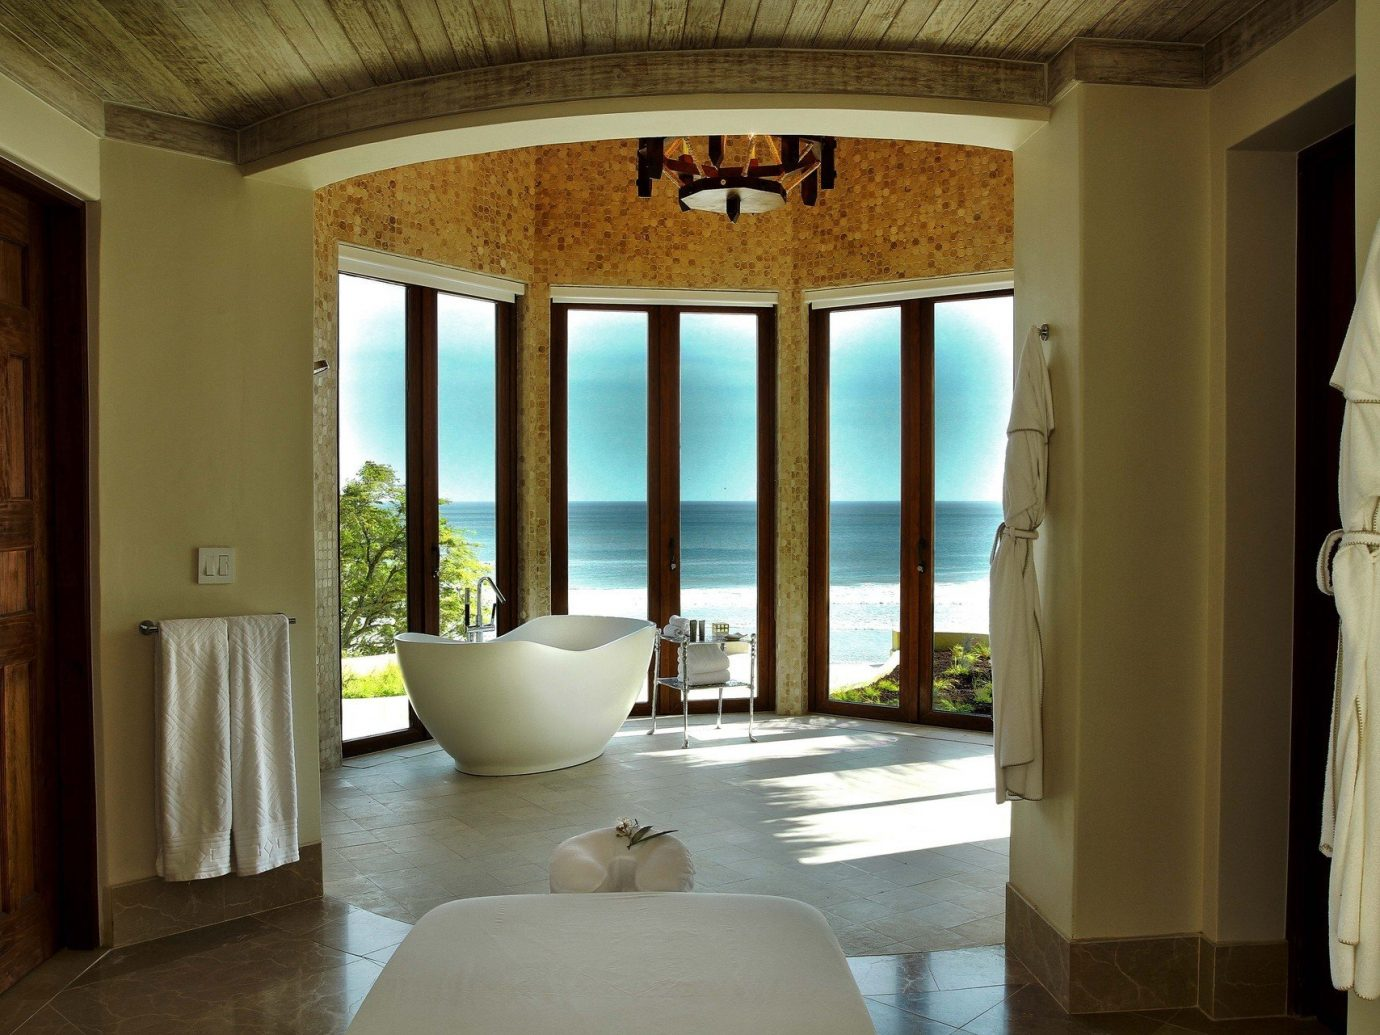 Bath bathroom beach house calm Elegant Hotels Luxury Ocean ocean view open-air regal remote Romance Rustic serene sophisticated Tropical turquoise view windows indoor wall floor house window room property ceiling estate building home Architecture interior design mansion wood living room Design Villa apartment hall Bedroom furniture